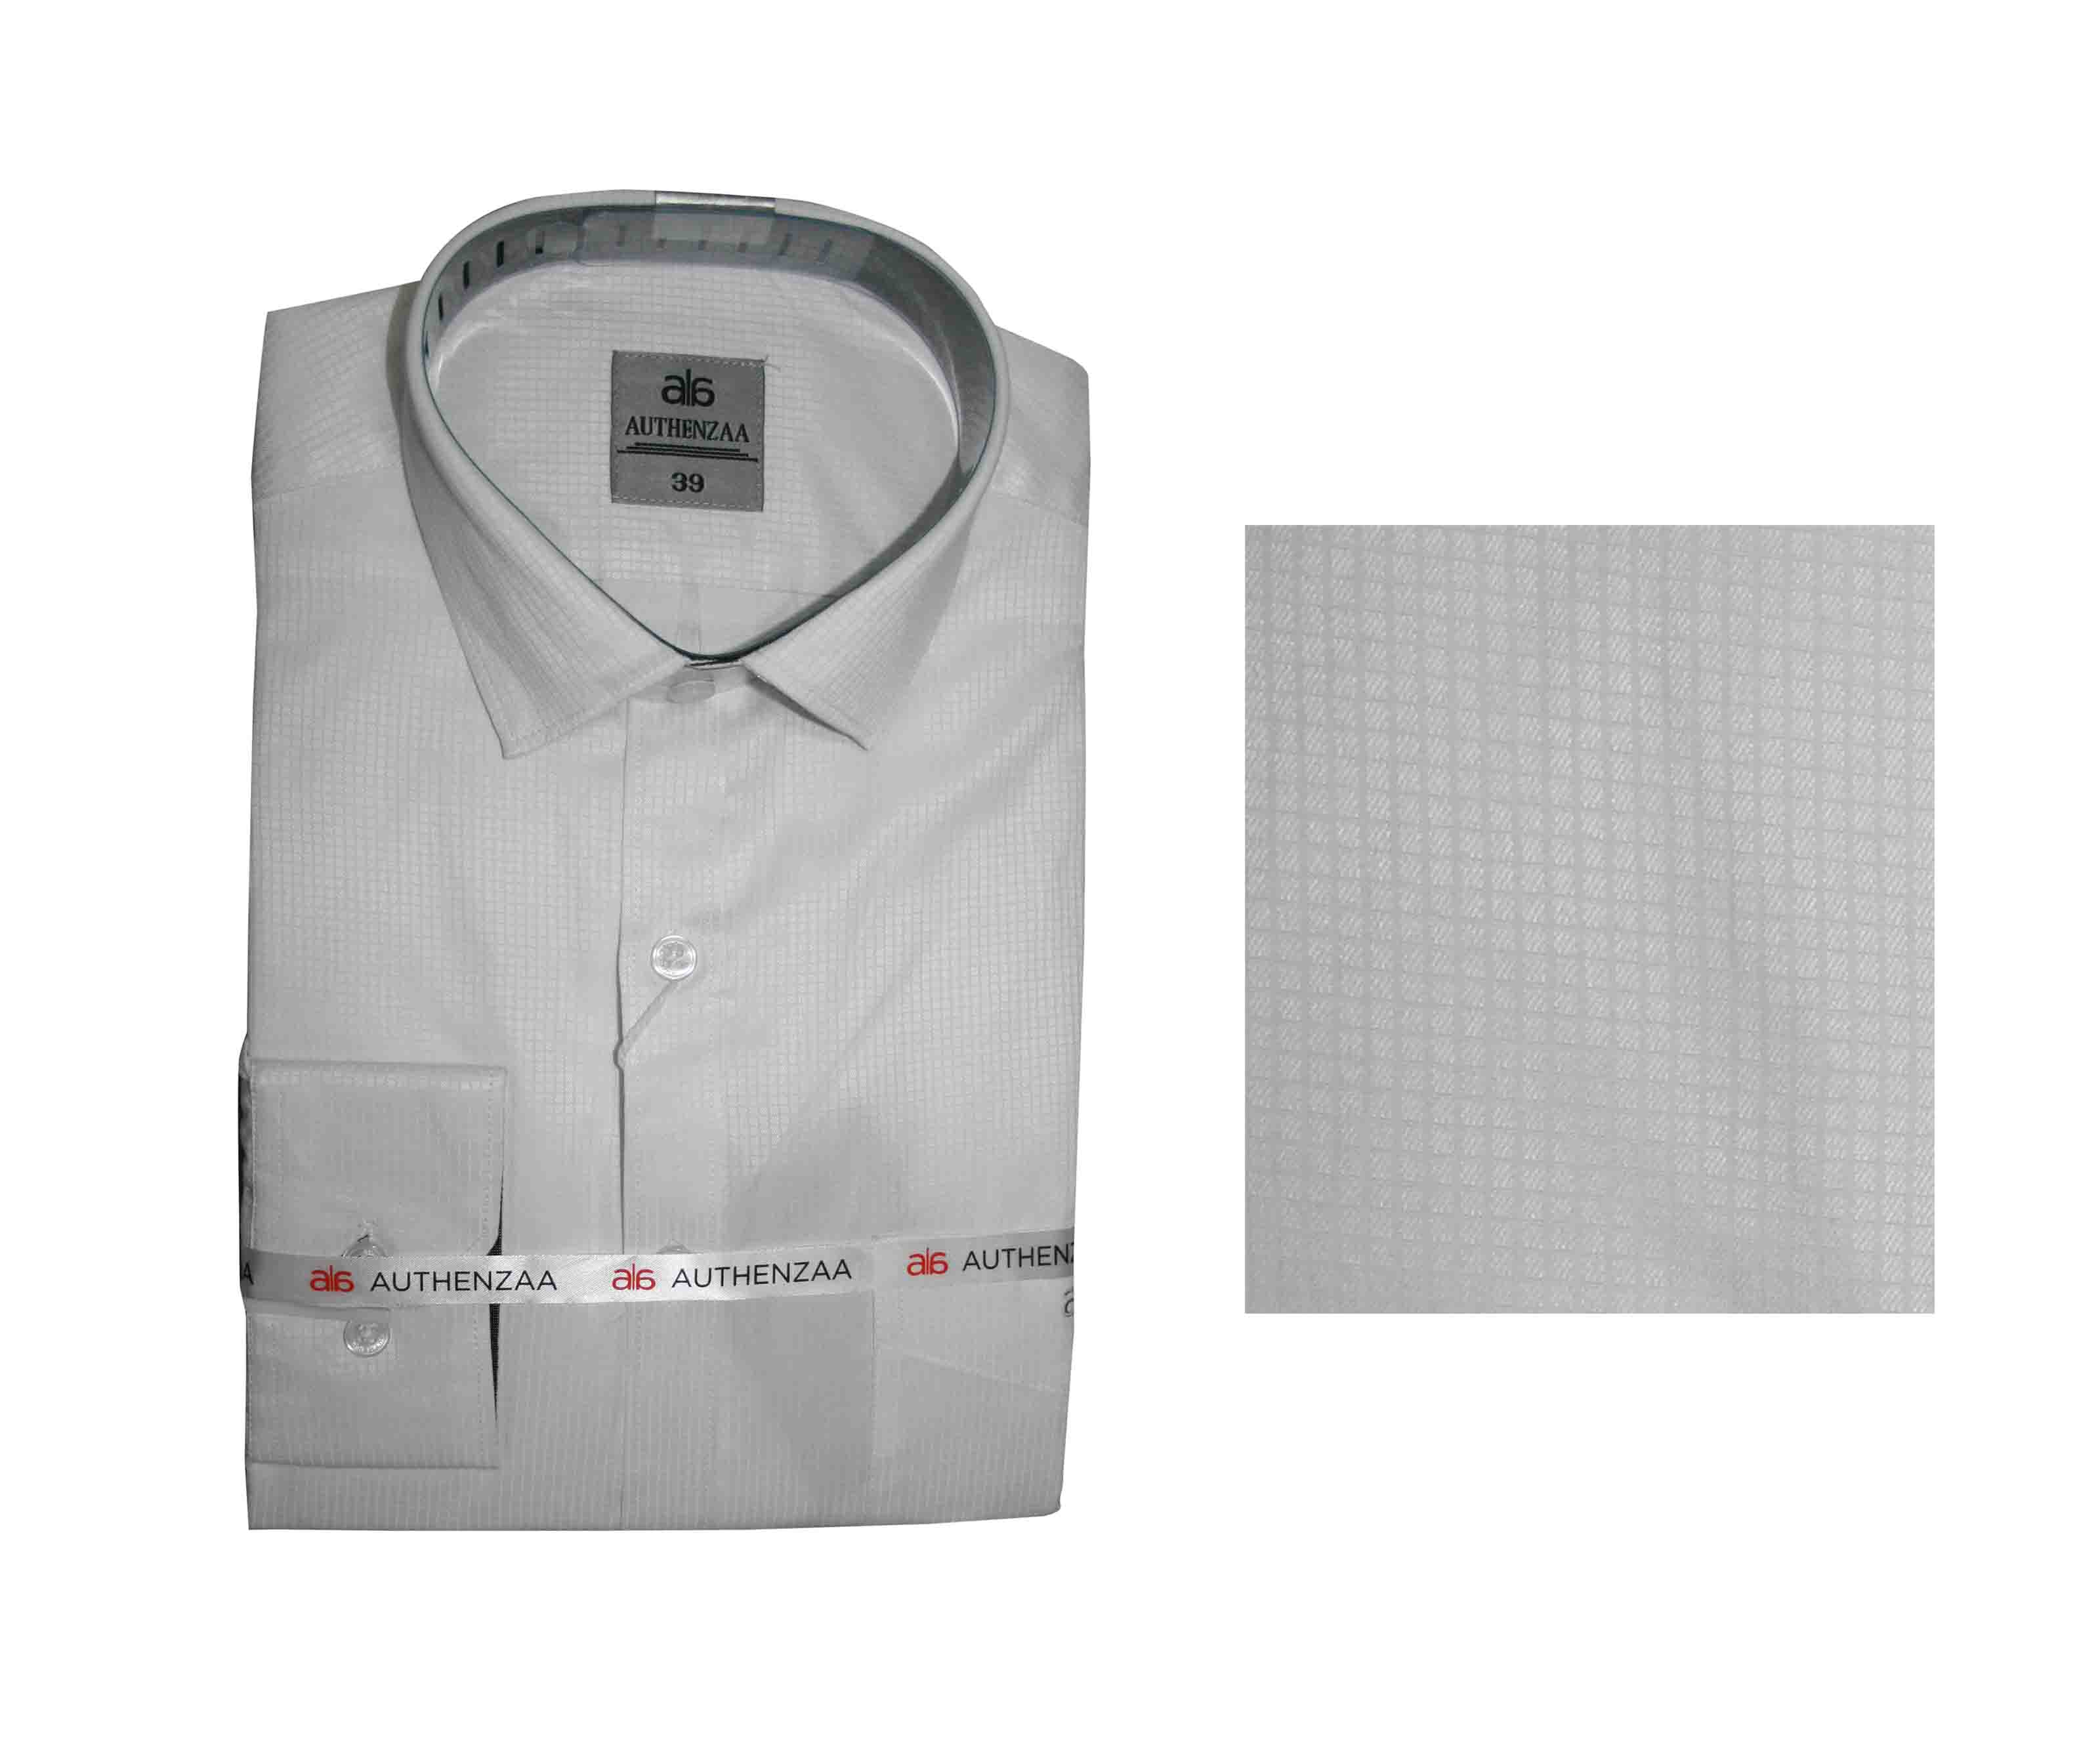 BT WHITE FANCY 2019-WHITE 03 FORMAL SHIRT